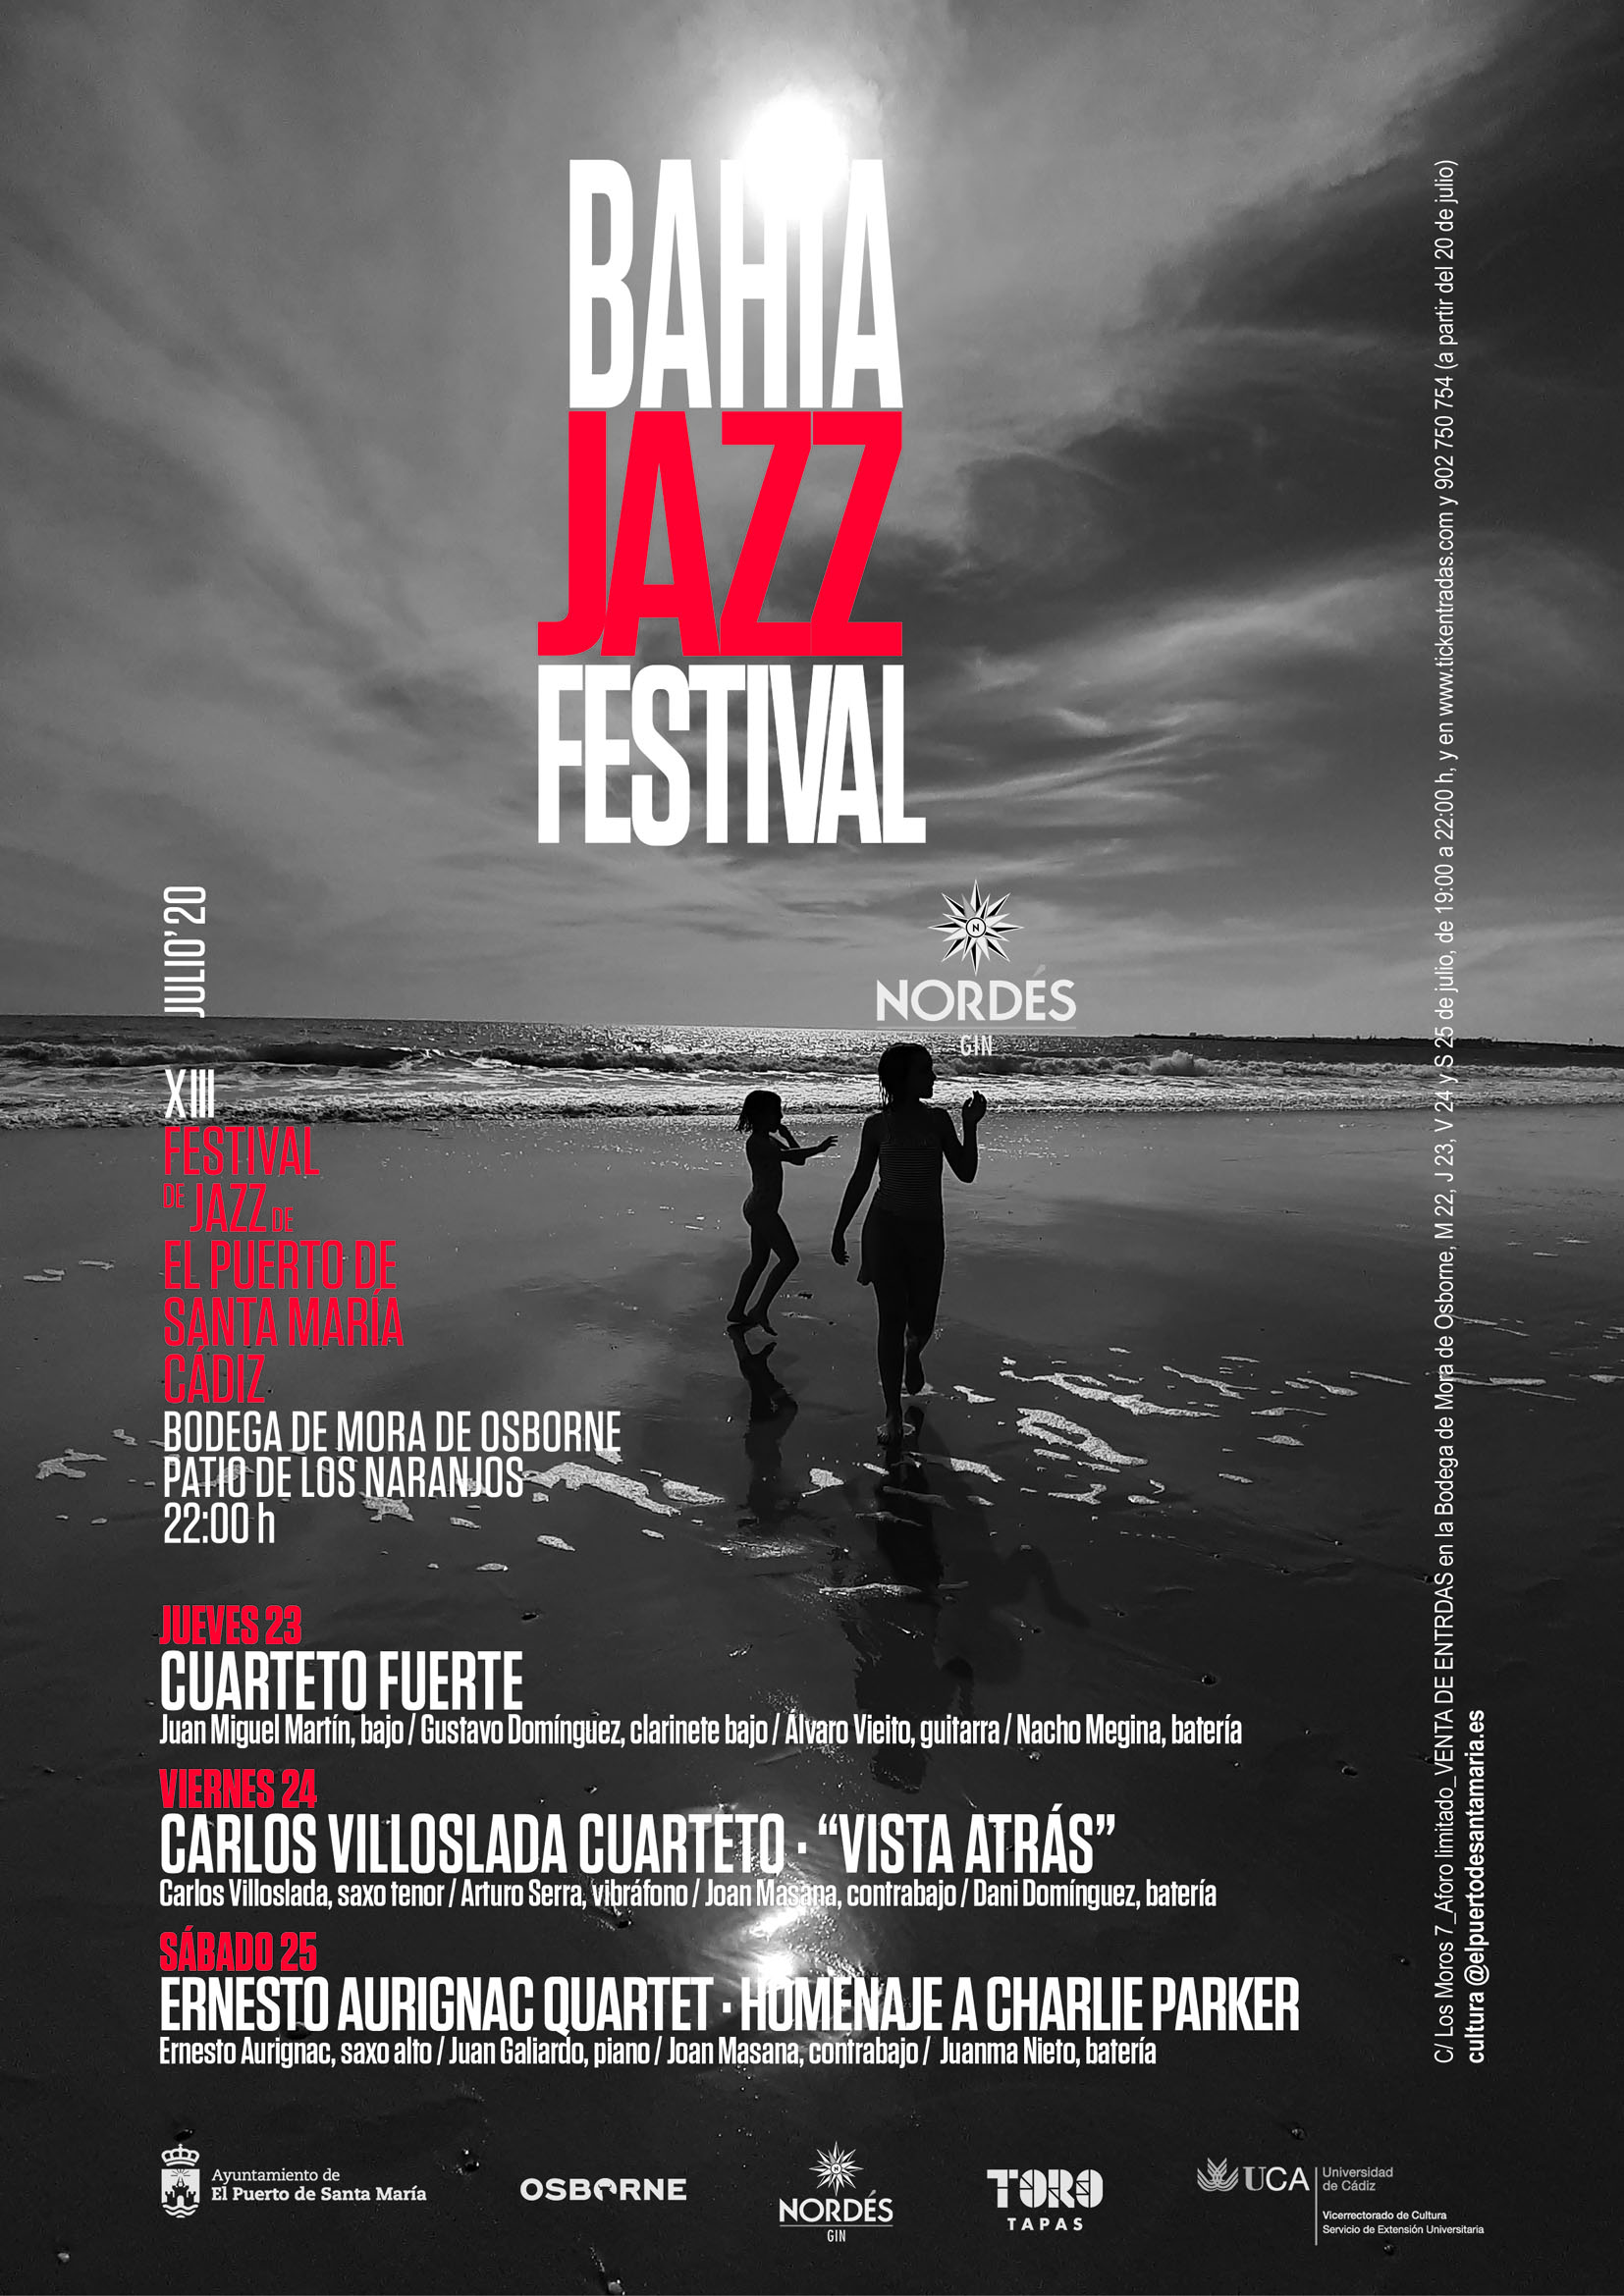 sites/default/files/2020/agenda/festivales/cartel jazz 2020 WEB.jpg